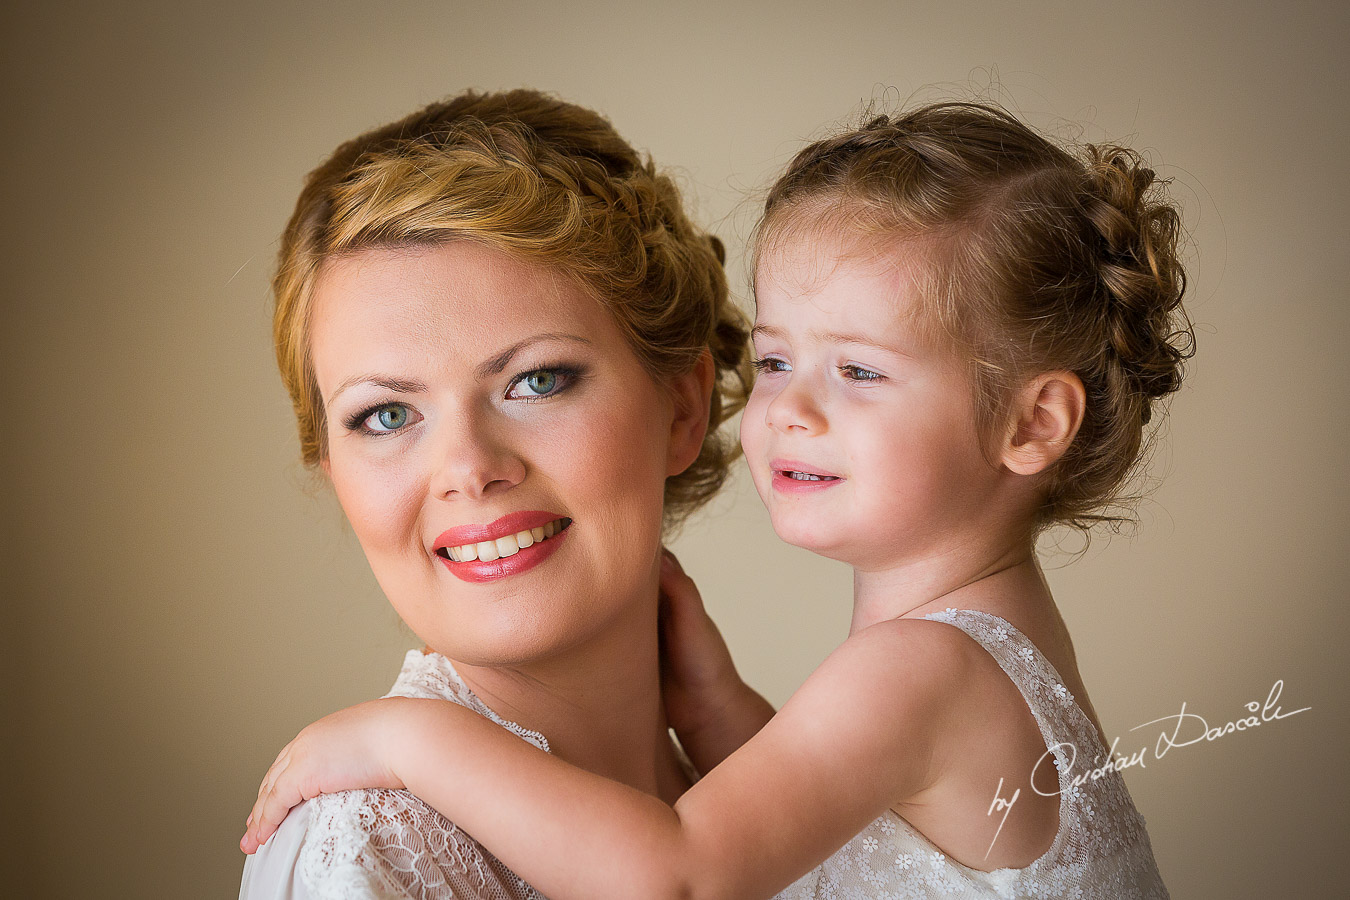 Bride Daria and her beautiful daughter just minutes before wedding ceremony at Elias Beach Hotel in Limassol